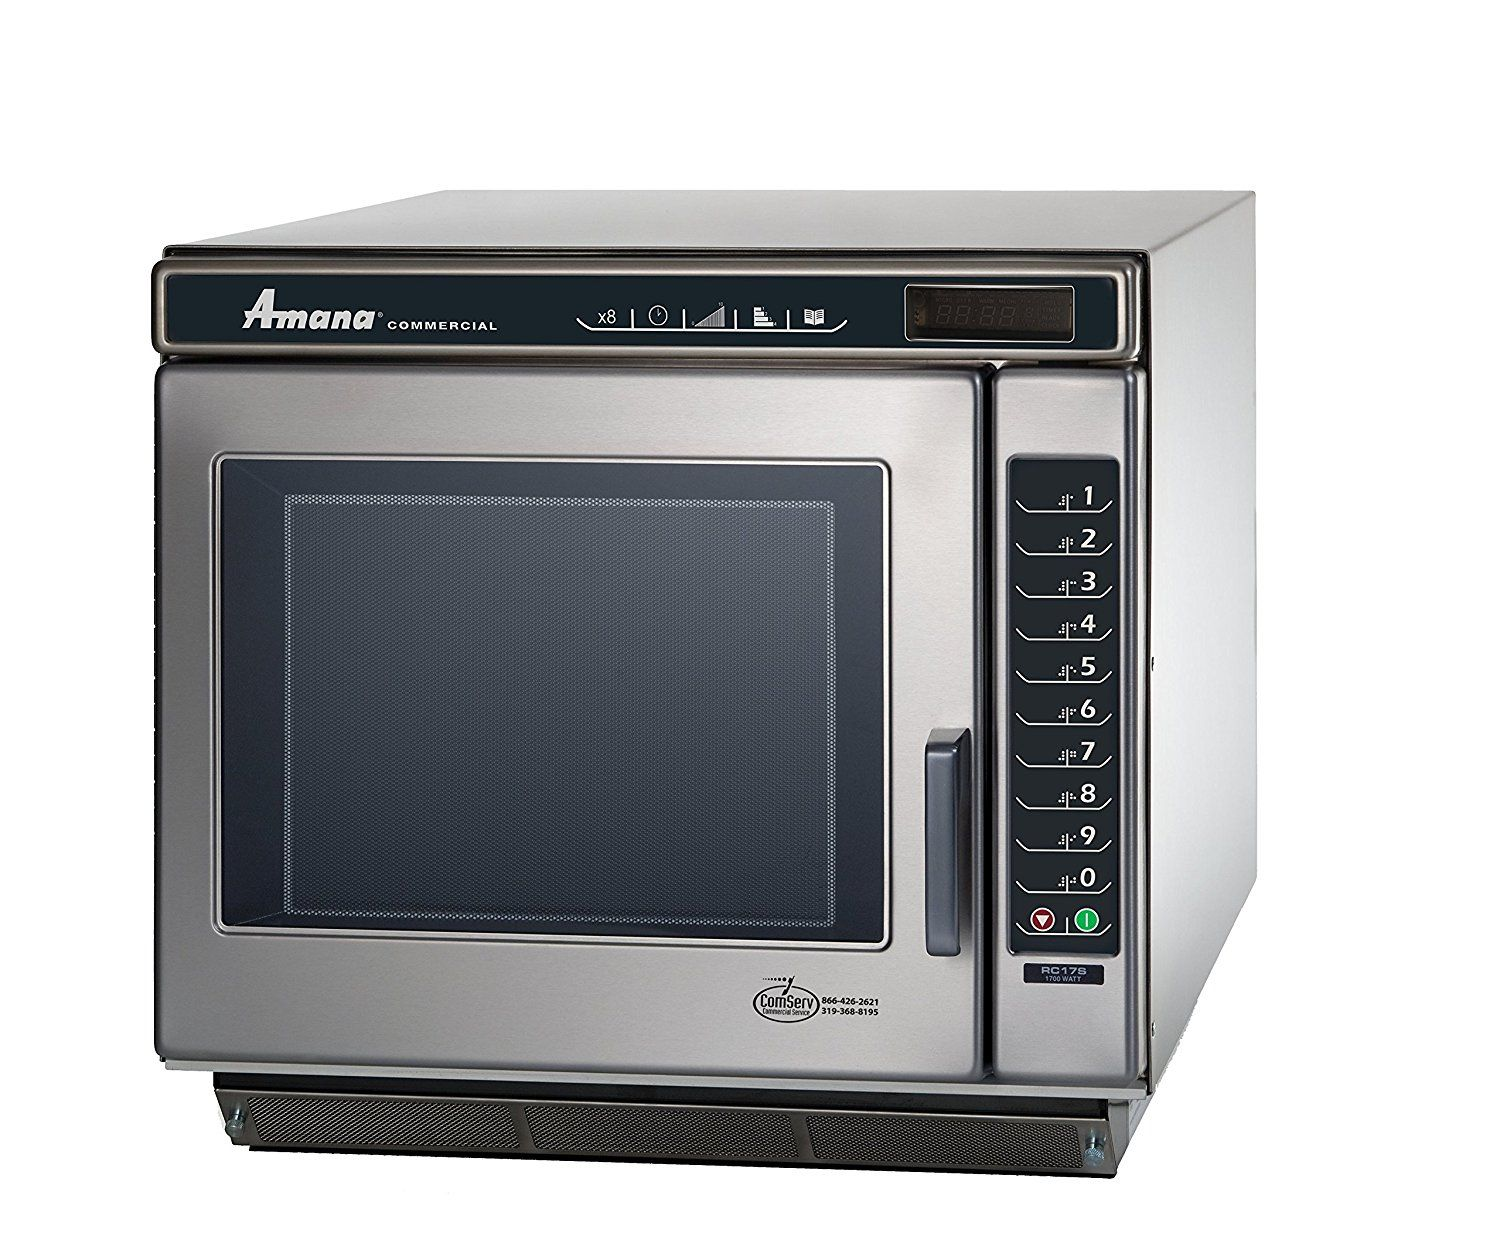 Hot Products Amana Commercial Rc17s2 Amana Rc Chef Line Commercial Microwave Oven 1700w People Searching For Products Services Not Only Practical And Economica